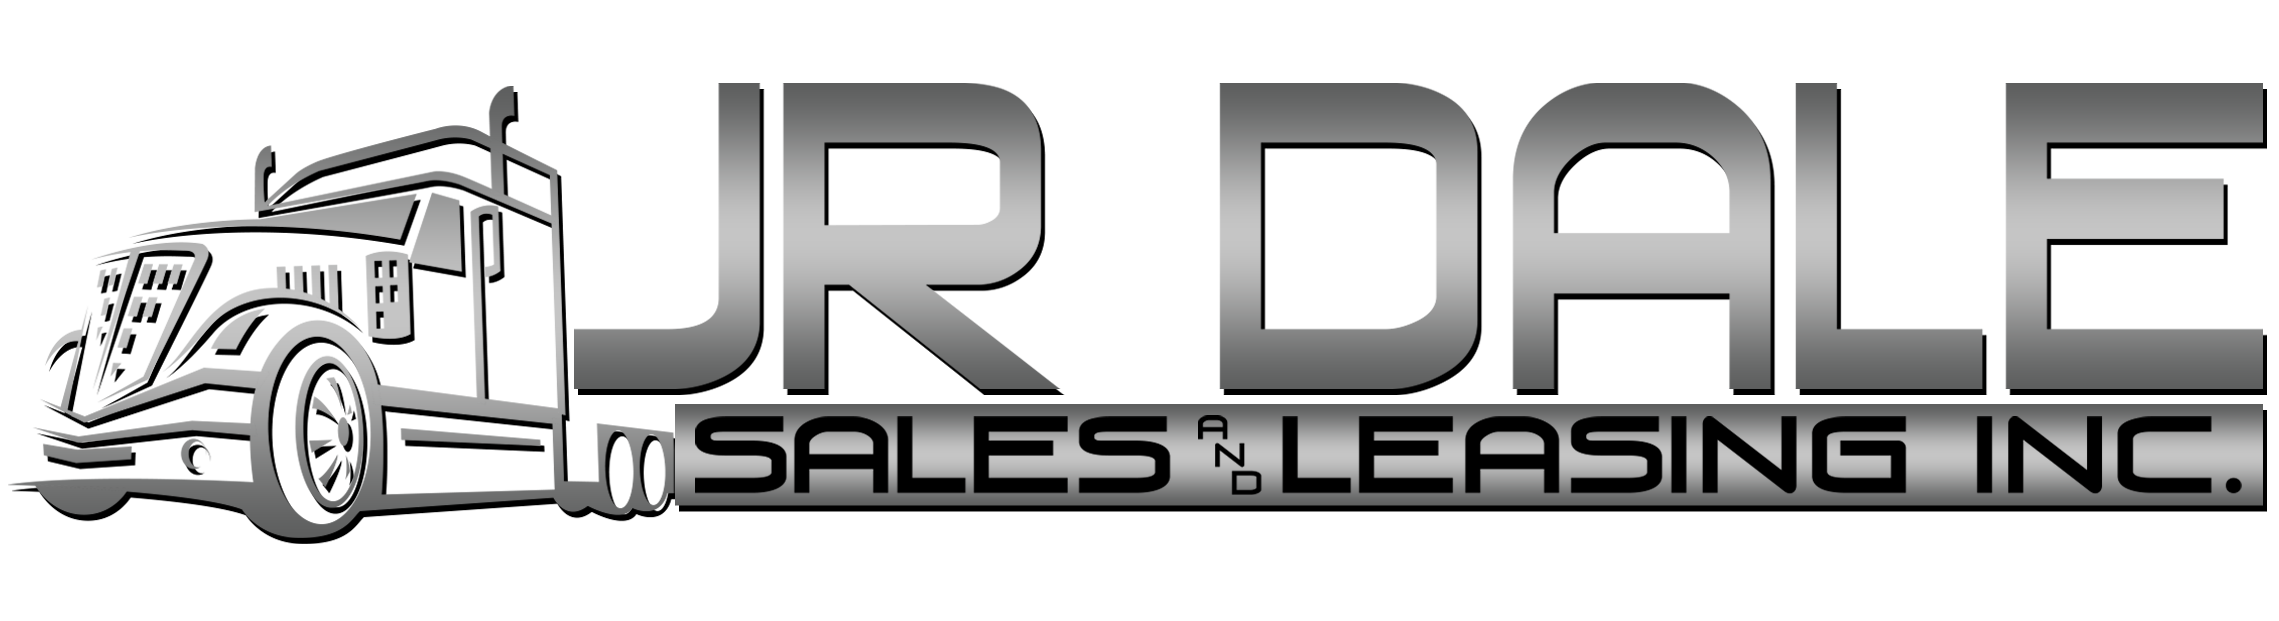 JR DALE SALES & LEASING INC